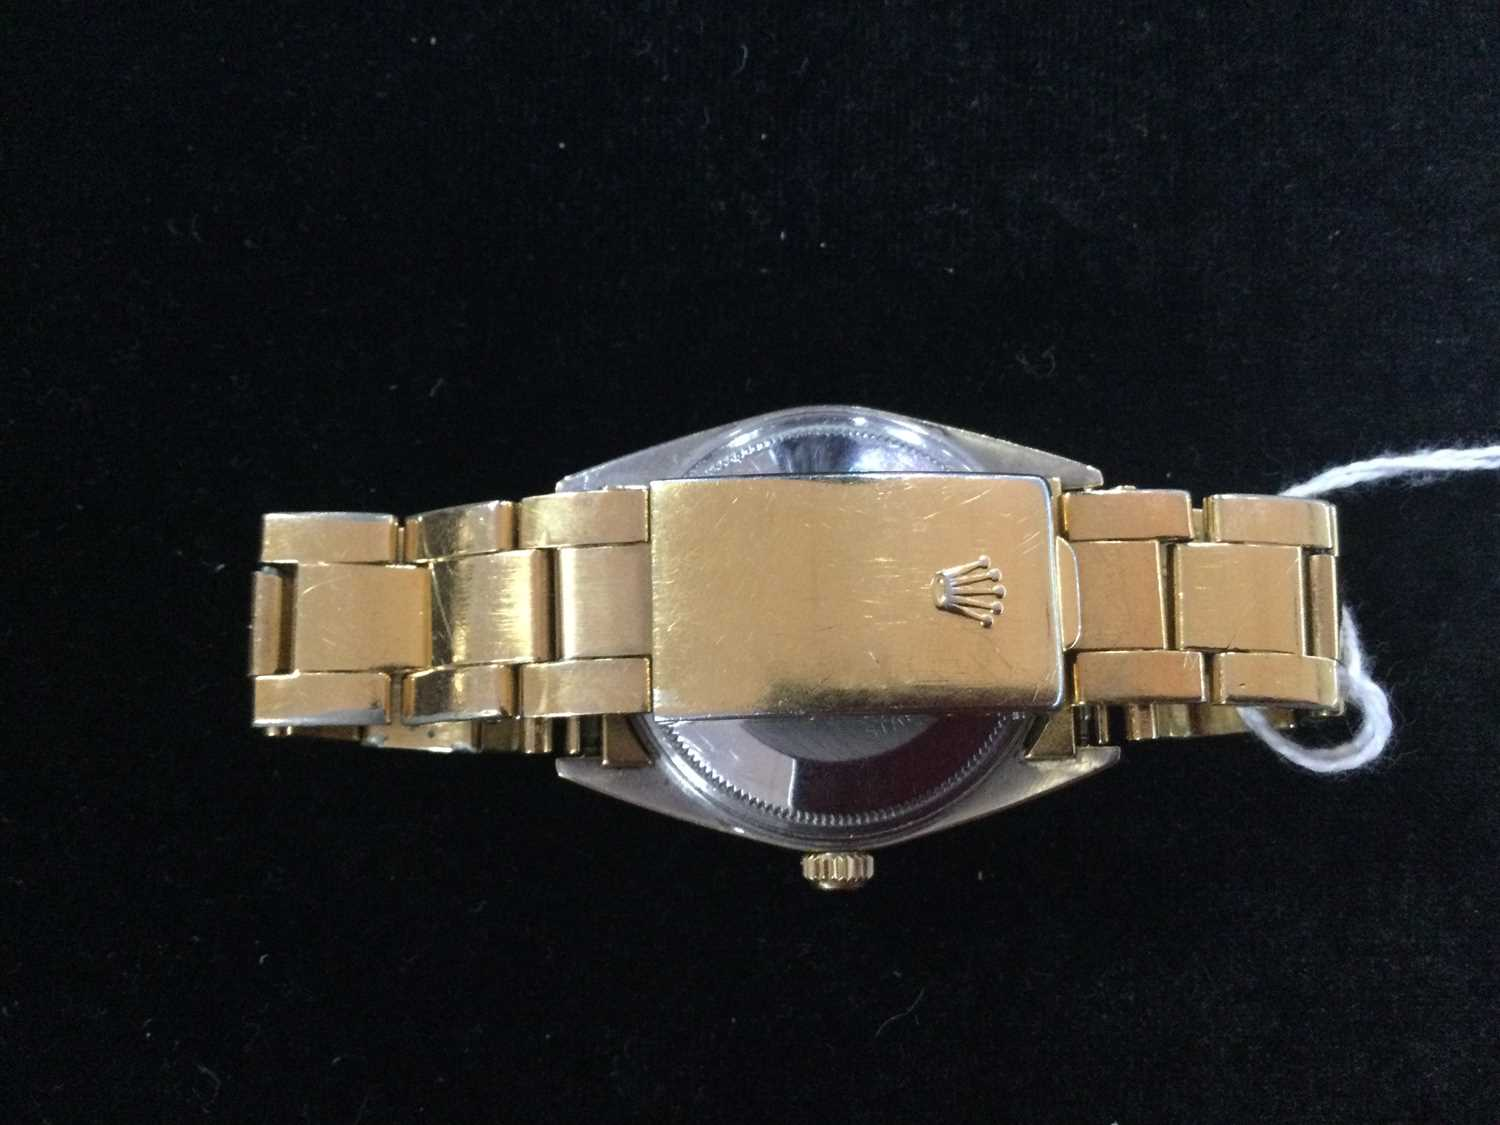 A GENTLEMAN'S ROLEX GOLD PLATED OYSTER PERPETUAL DATE AUTOMATIC WRISTWATCH - Image 10 of 13